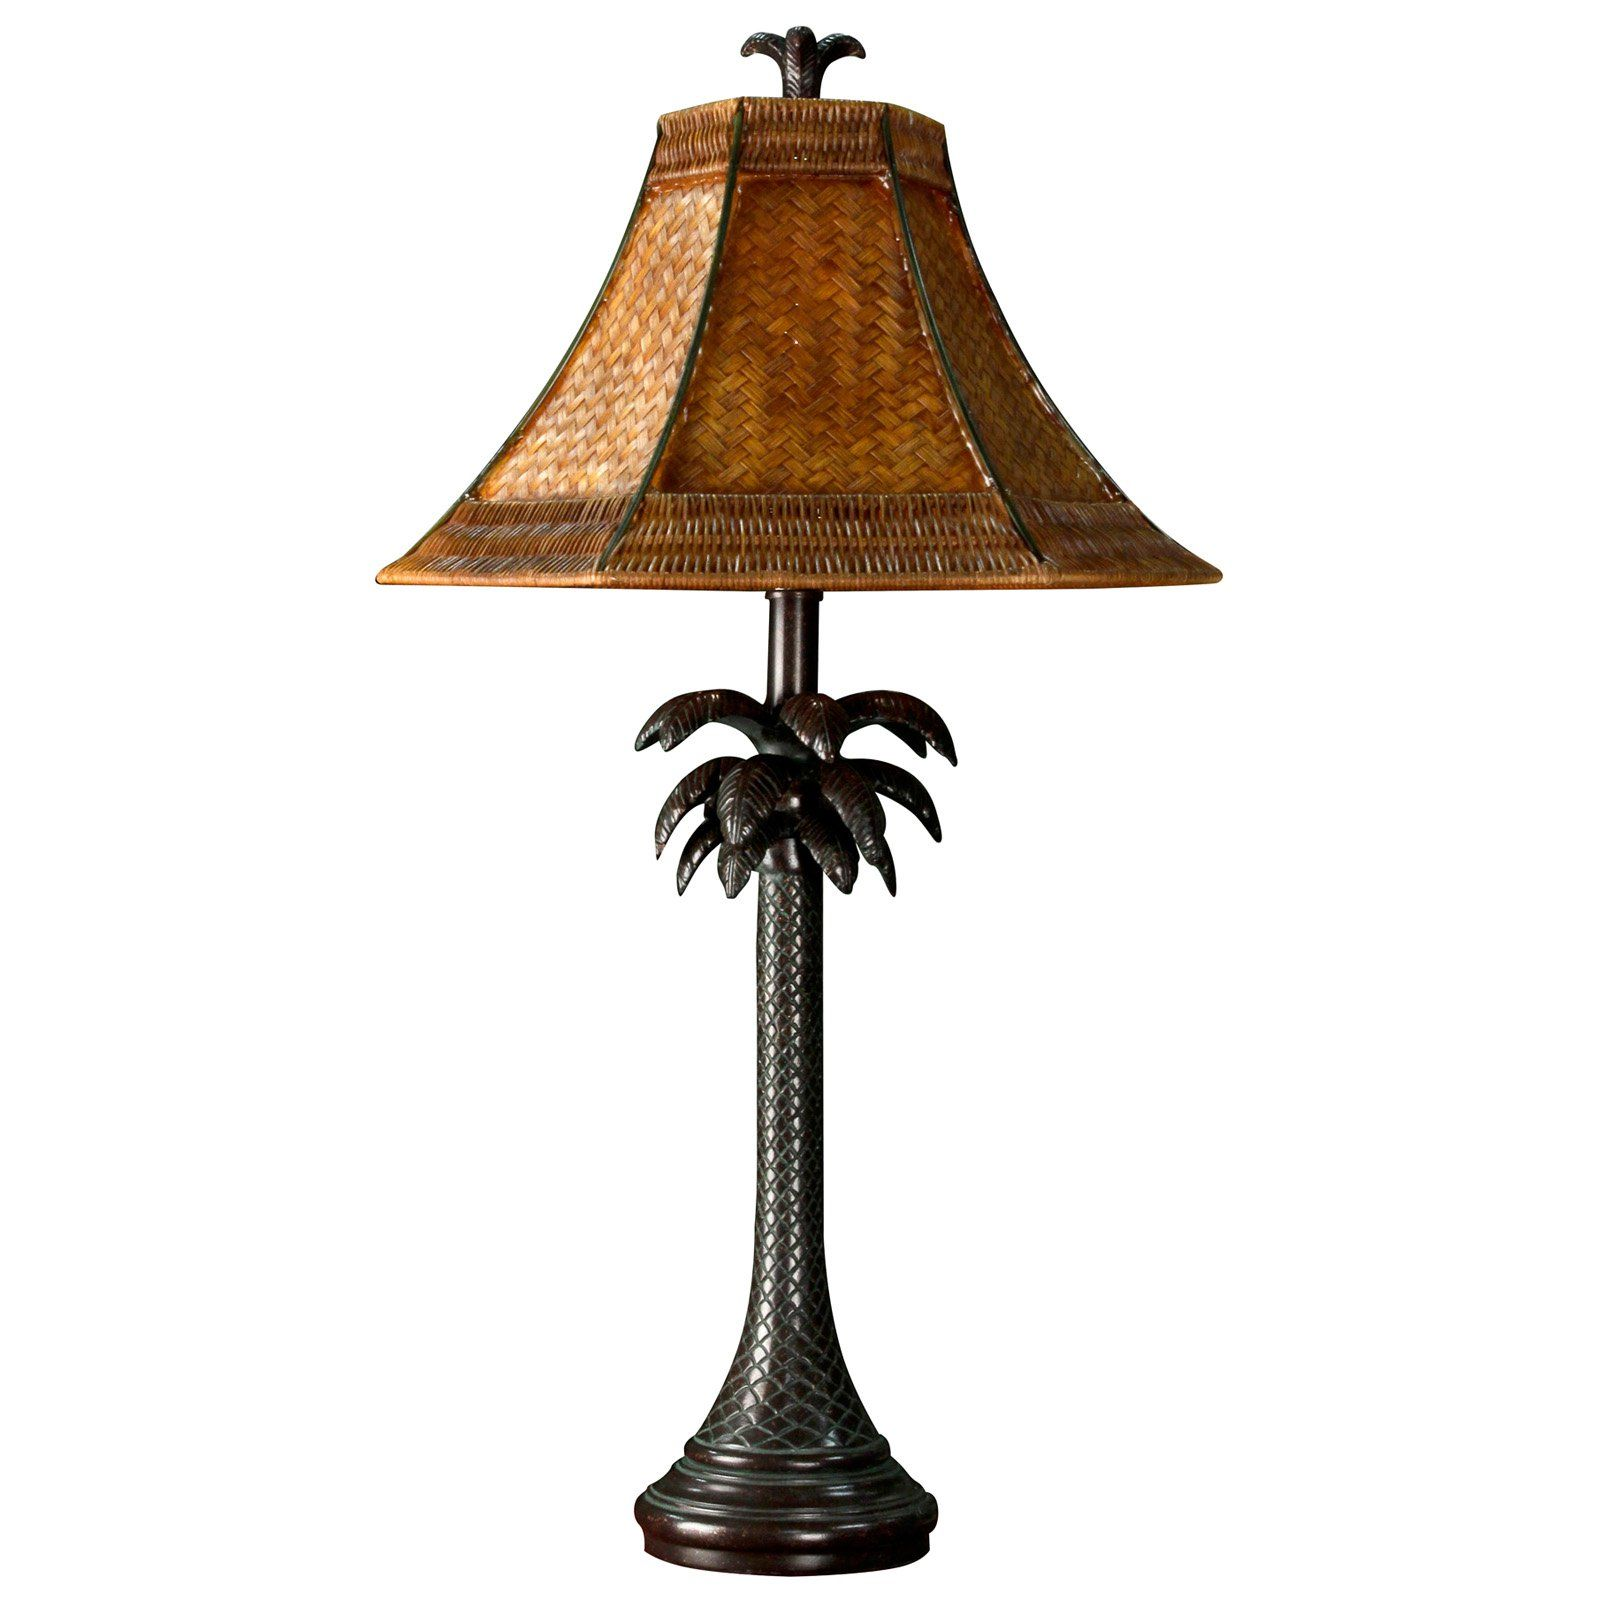 Captivating Style Craft Tropical Table Lamp   Get Out The Tiki Torches And Get The  Party Started